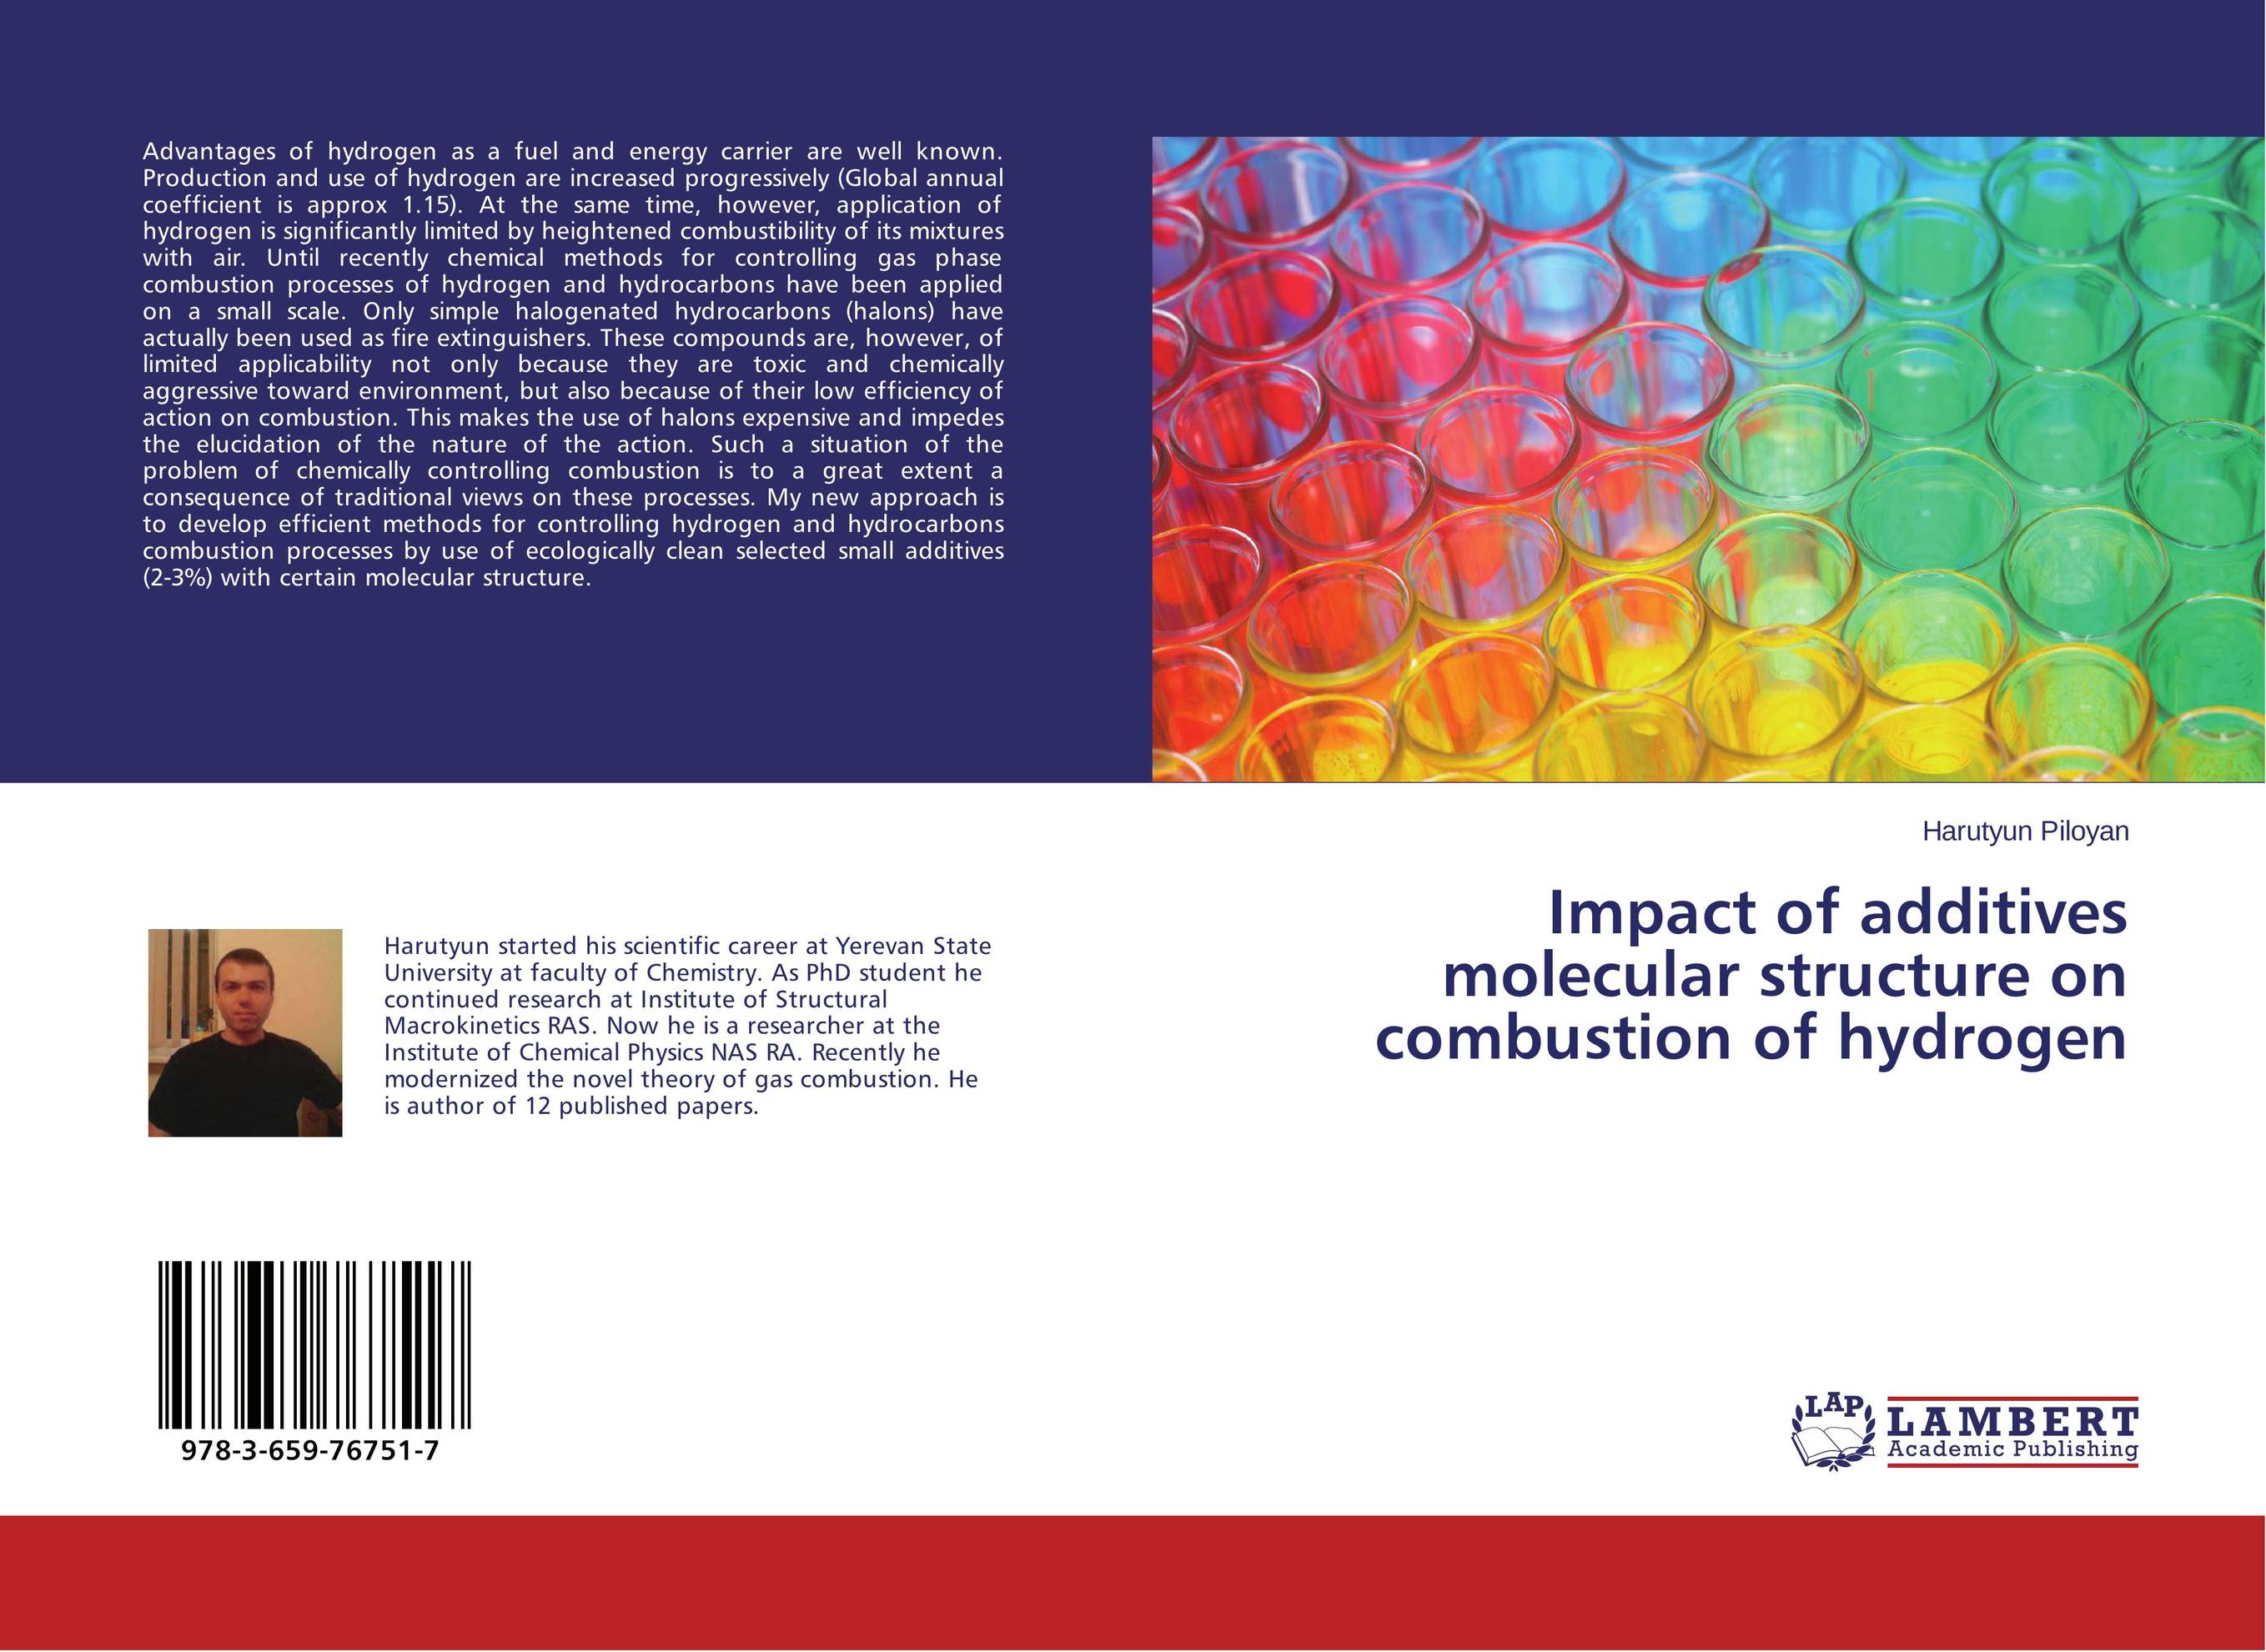 Impact of additives molecular structure on combustion of hydrogen molecular hydrogen magie